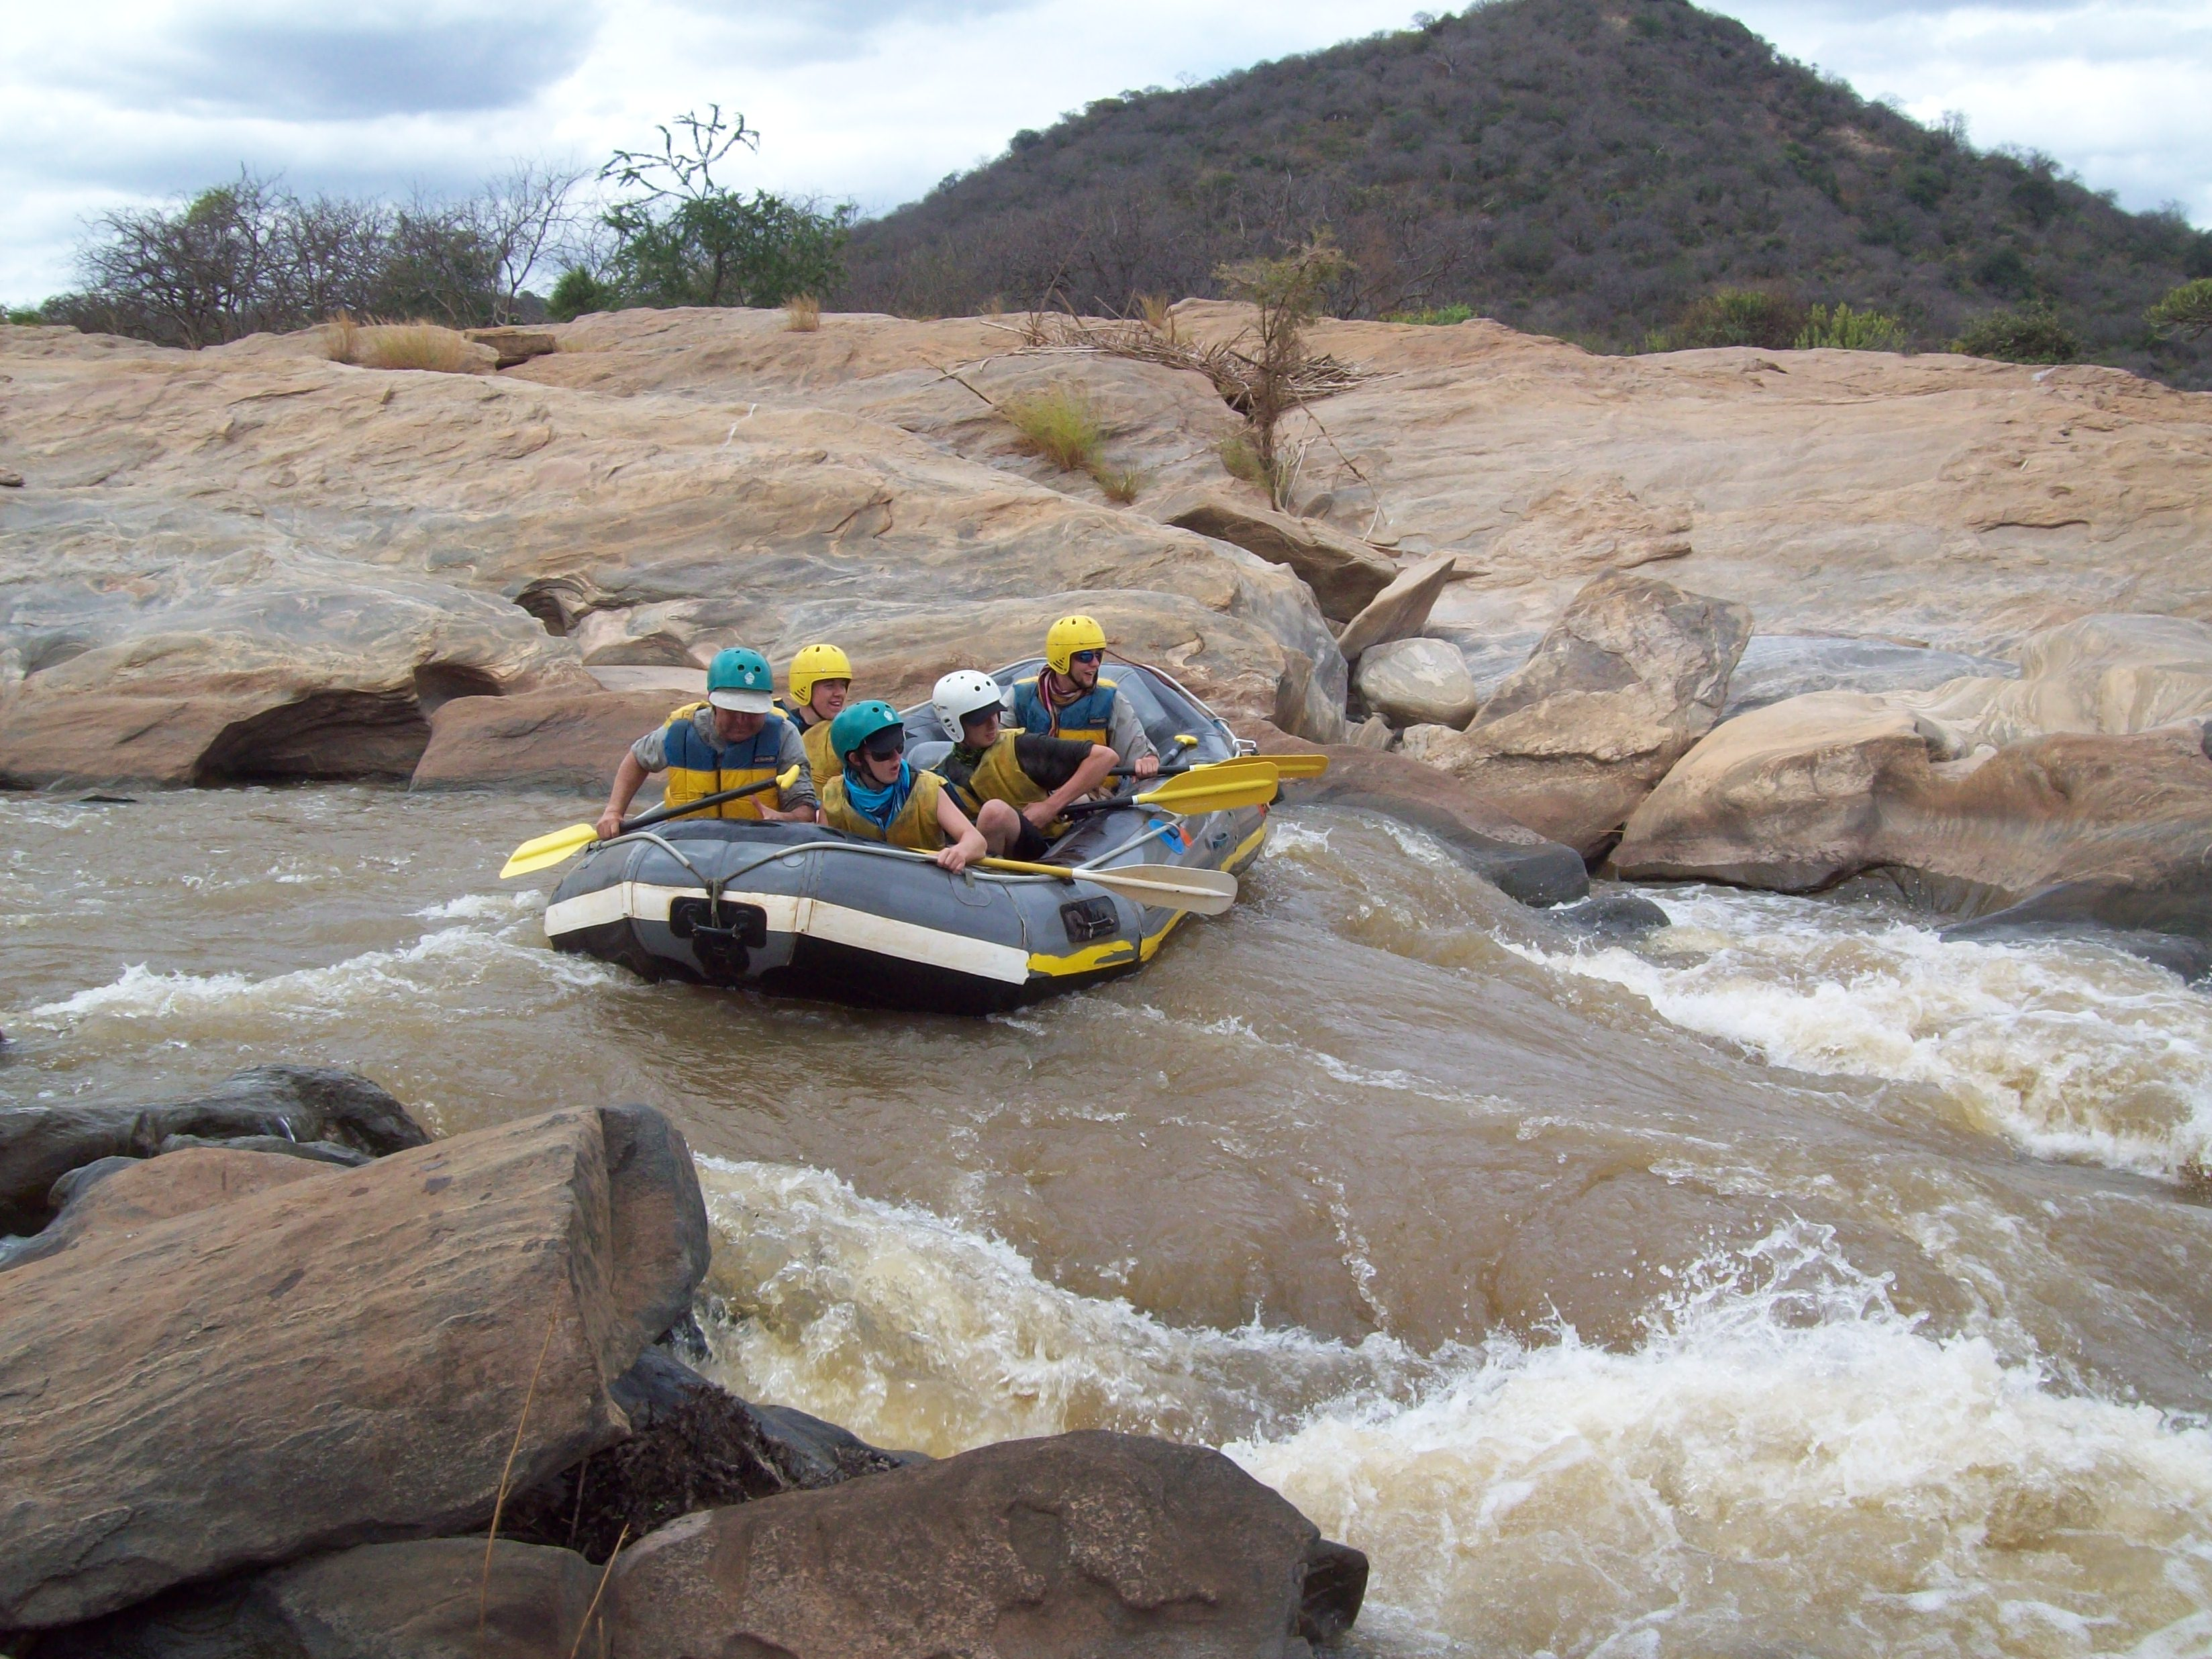 Rafting along the Athi river